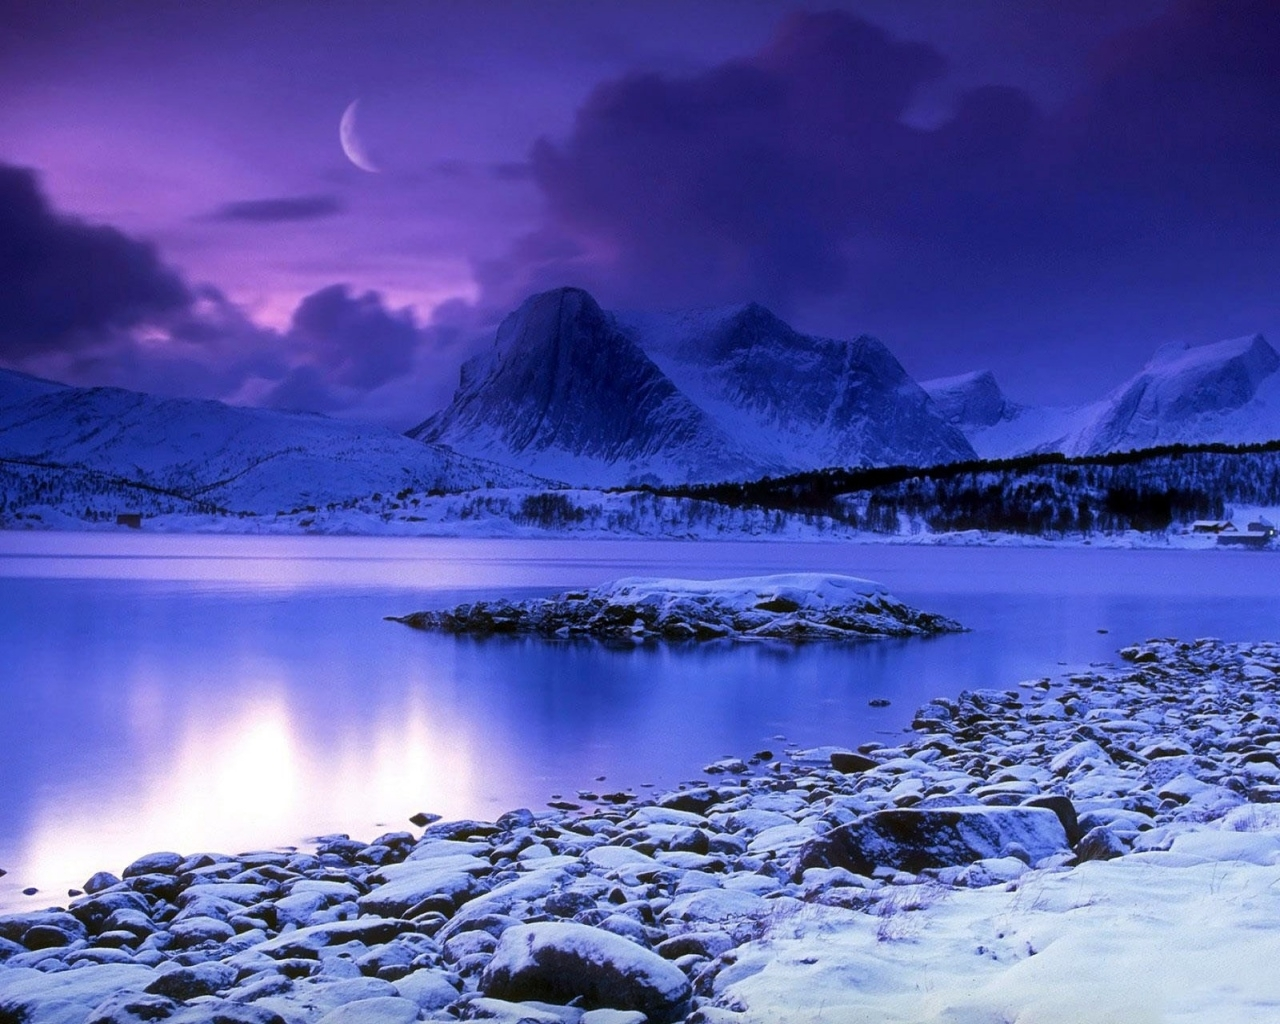 Mountain Pictures: Mountains At Night